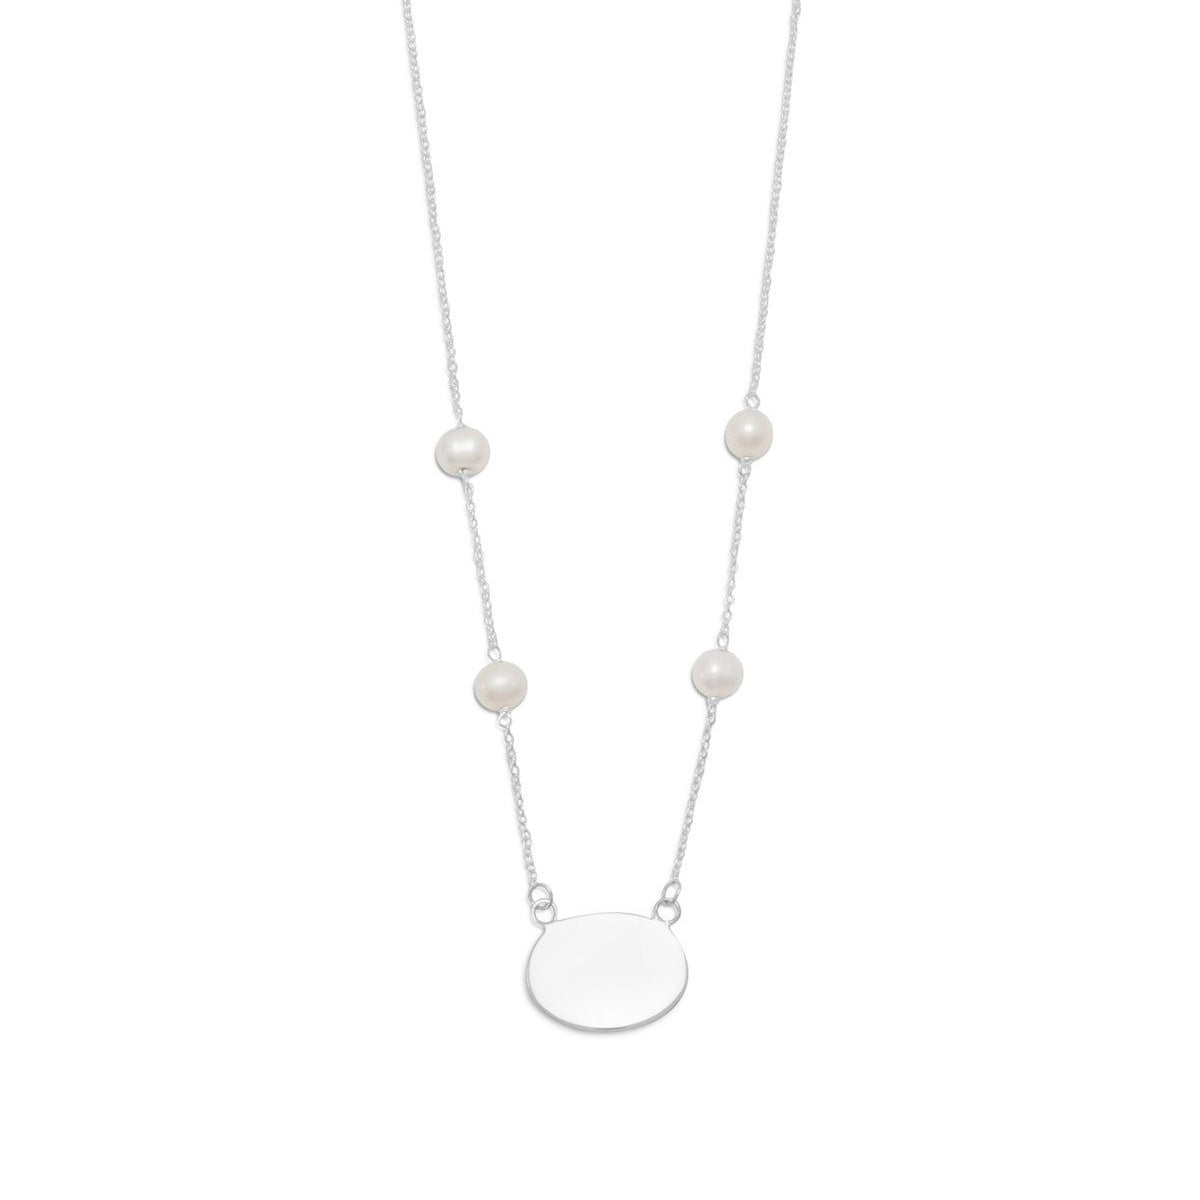 This necklace features an engravable oval nameplate ID tag pendant on a split chain with 4 cultured freshwater pearl stations in .925 sterling silver.